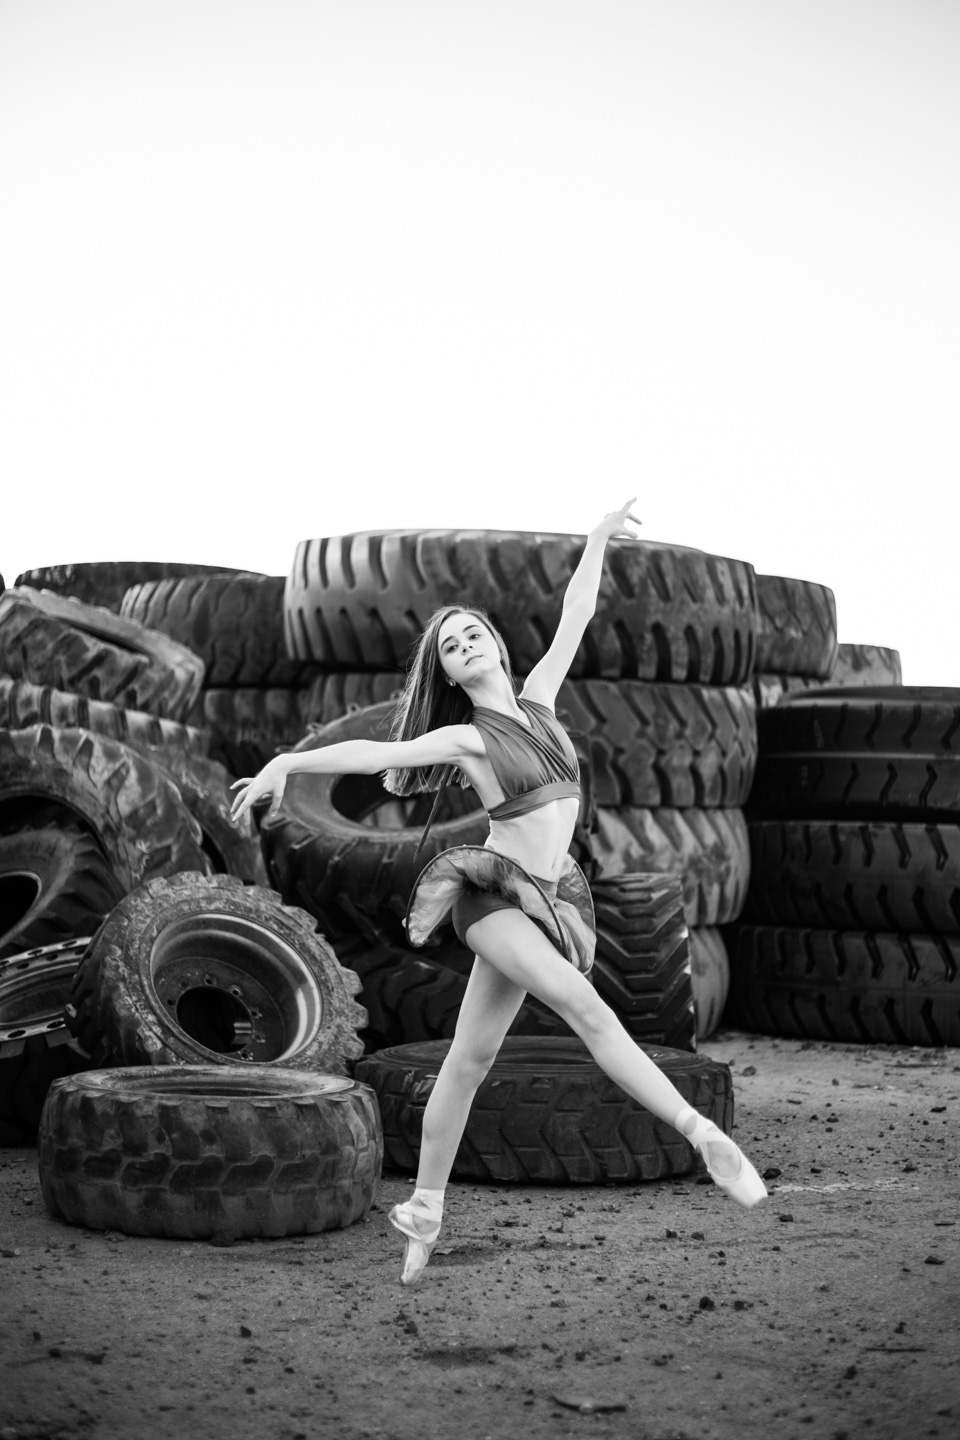 pittsburgh-tire-yard-dana-carskadden-5